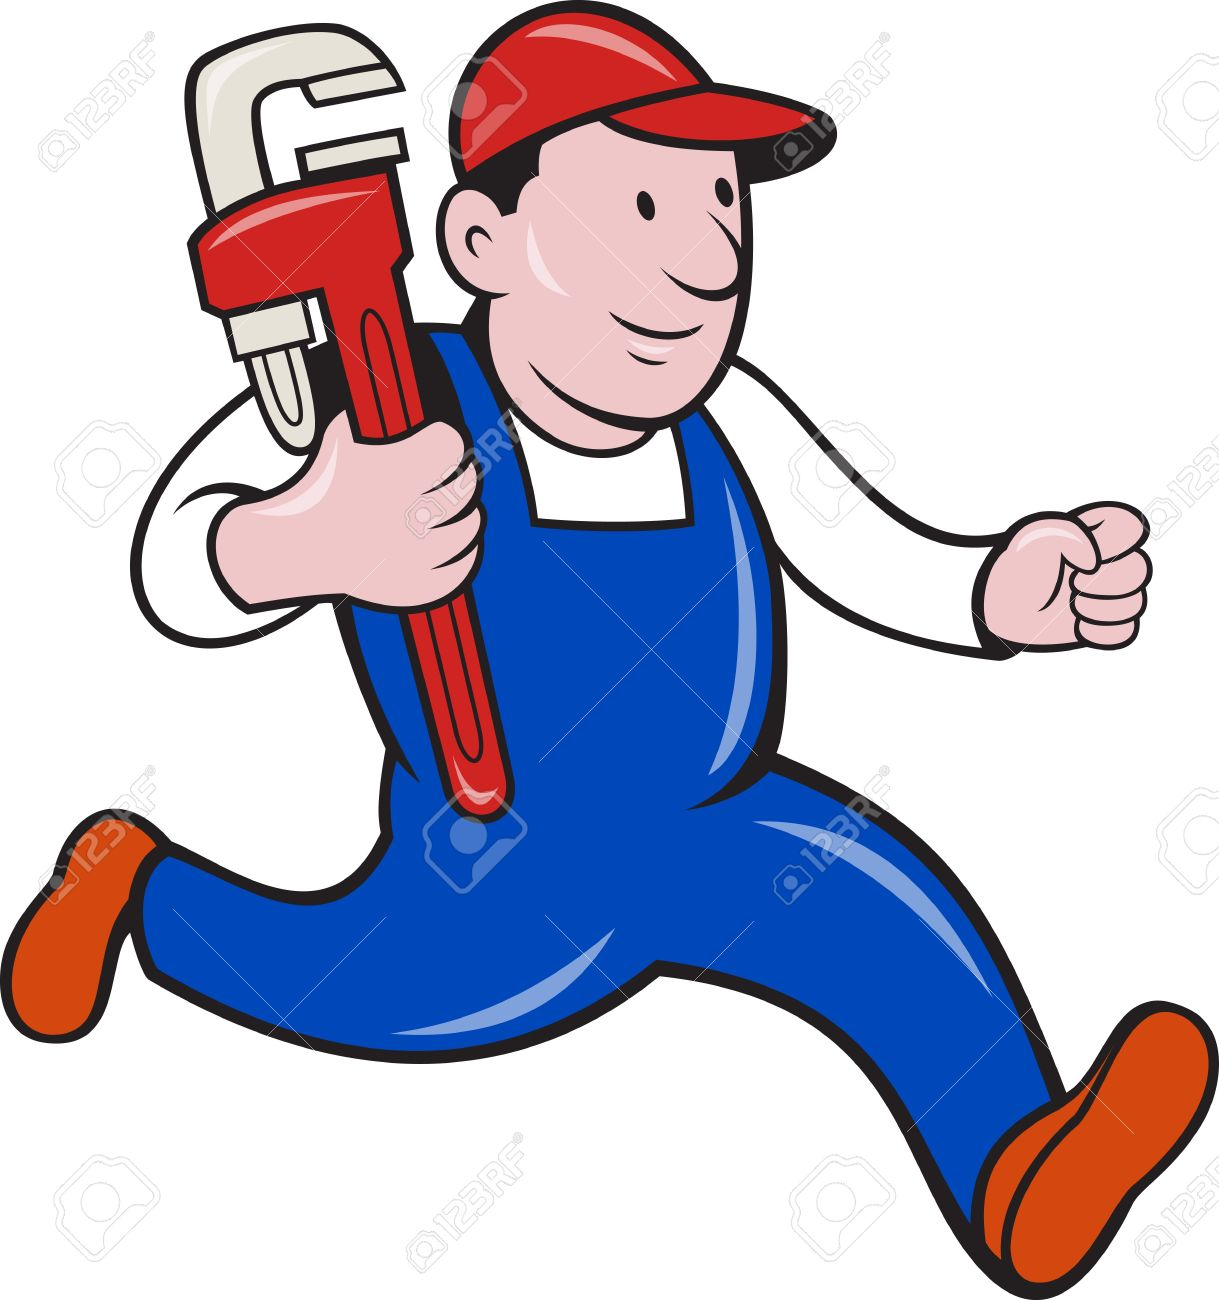 Illustration of a plumber with monkey wrench done in cartoon style on isolated background. Stock Vector - 18233944